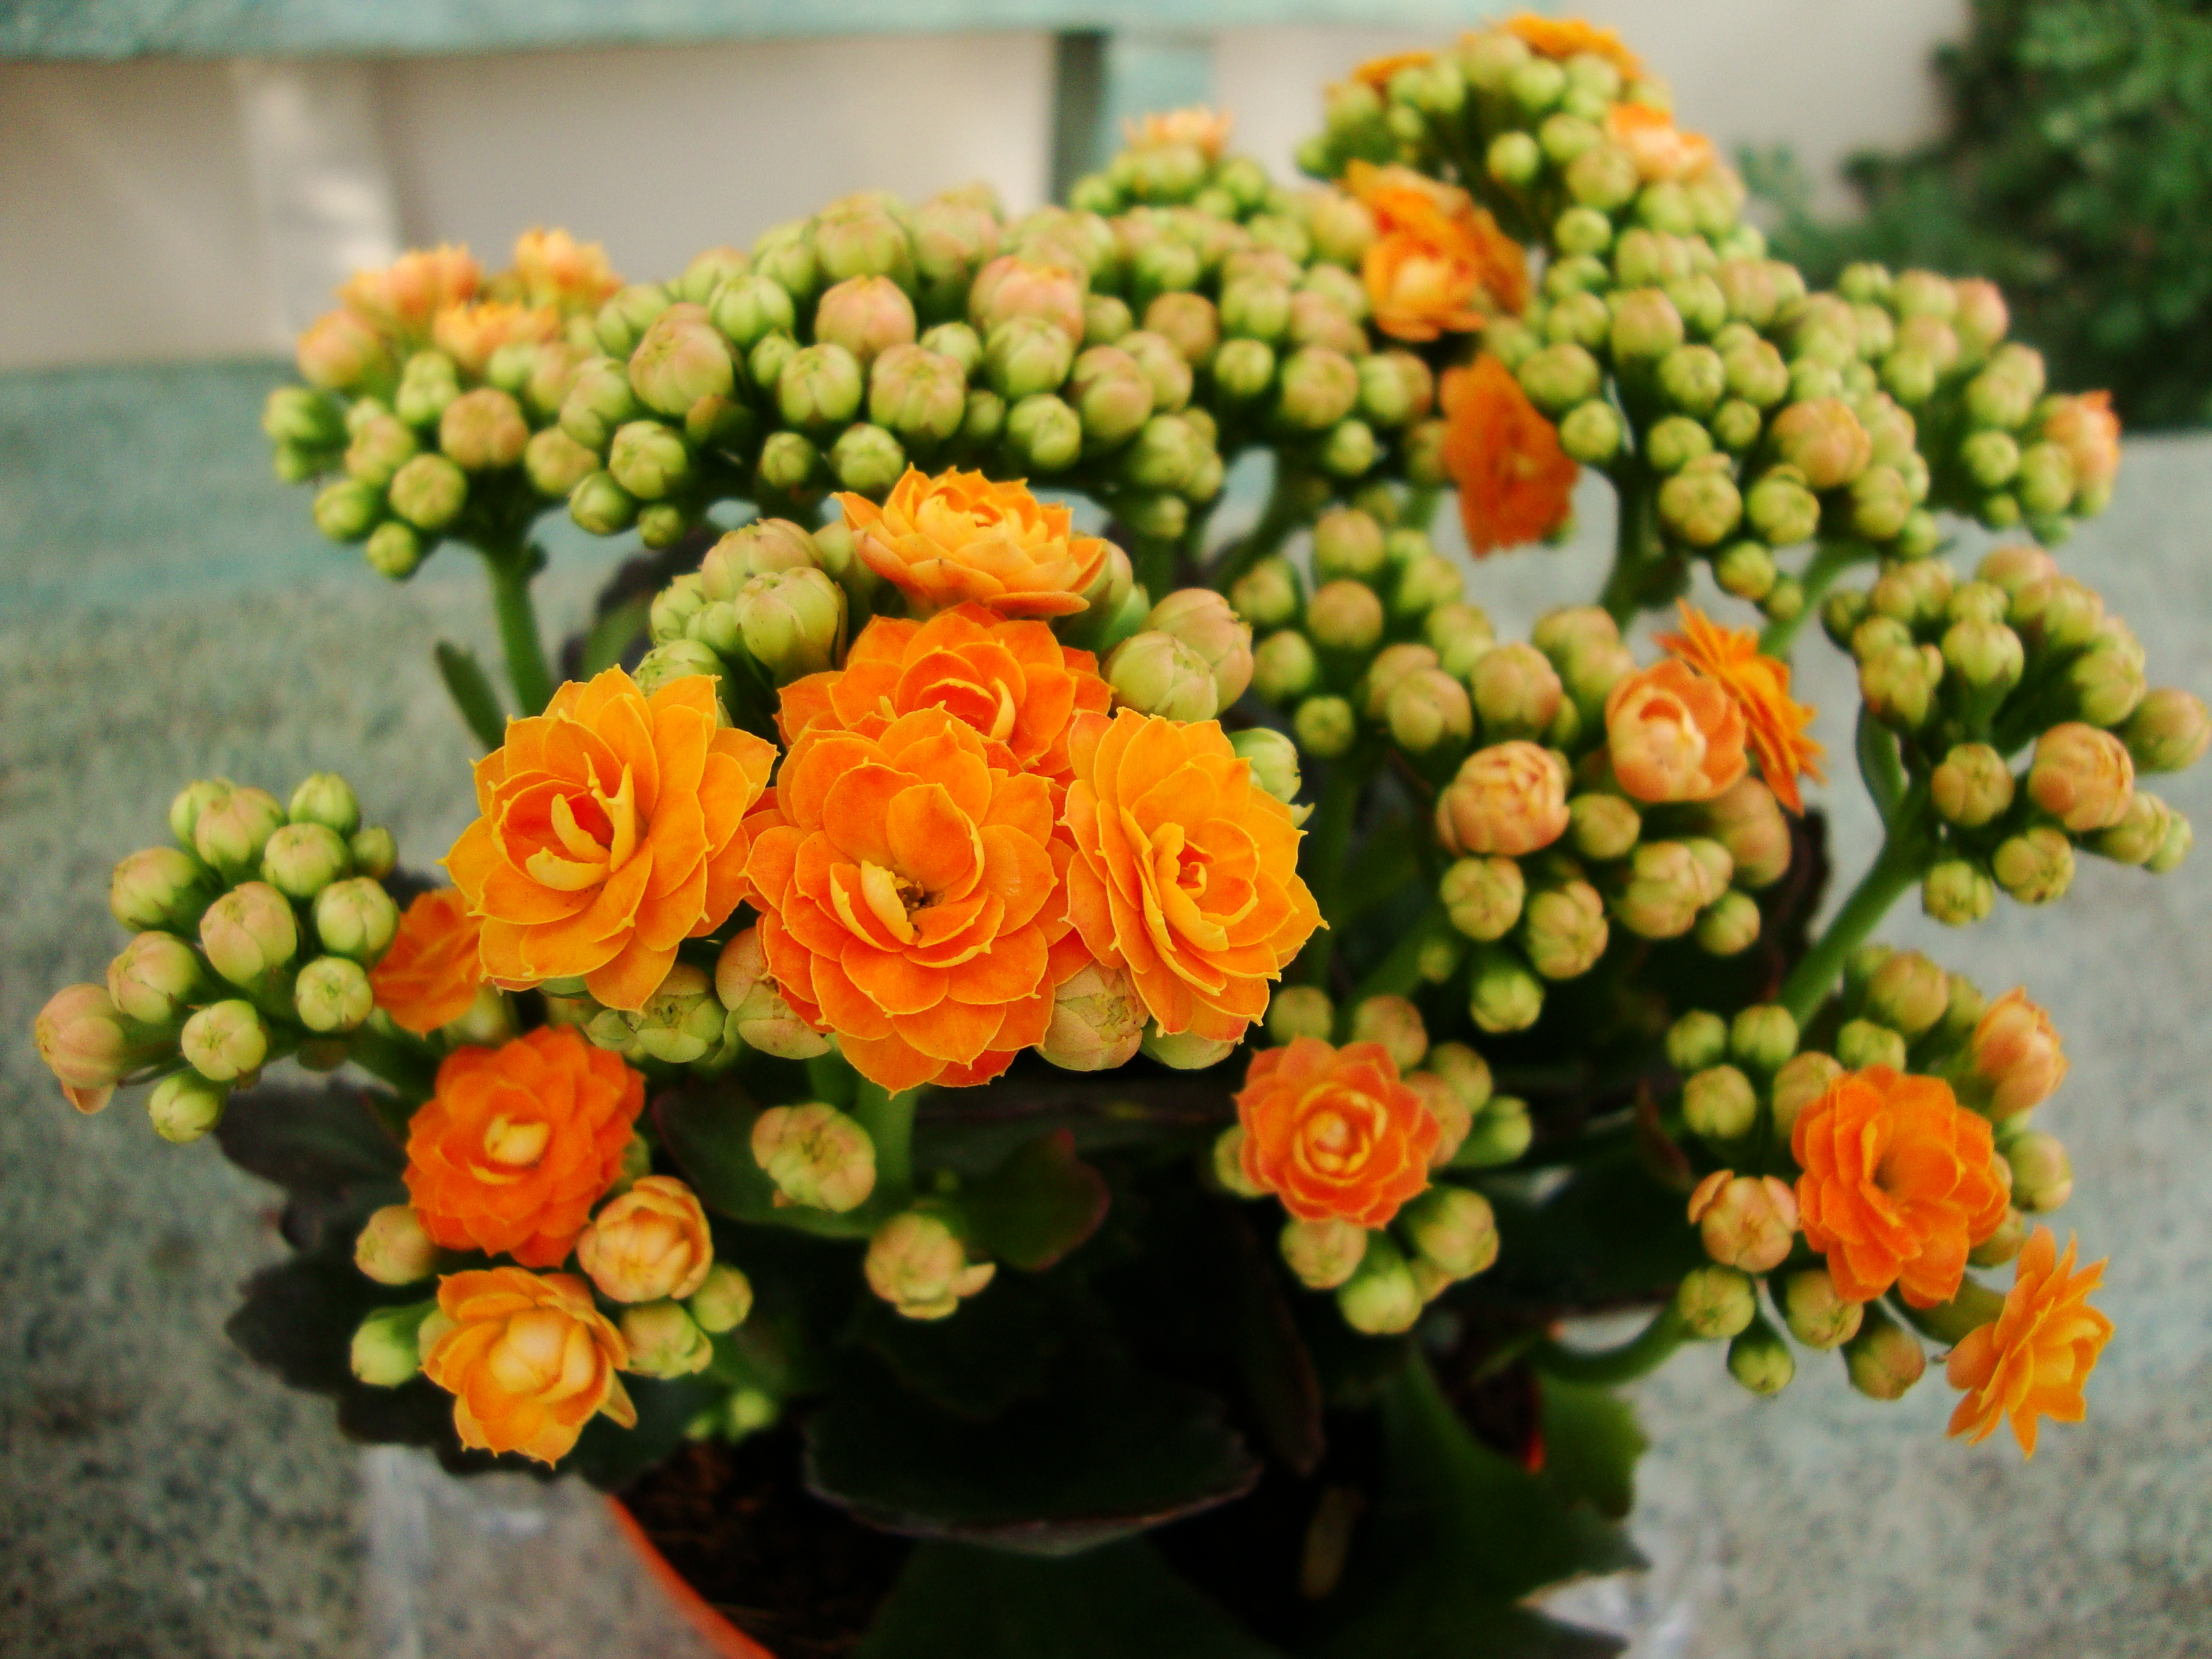 Kalanchoe blossfeldiana - Wikipedia on can see, can the lost tapes, can go, can get,